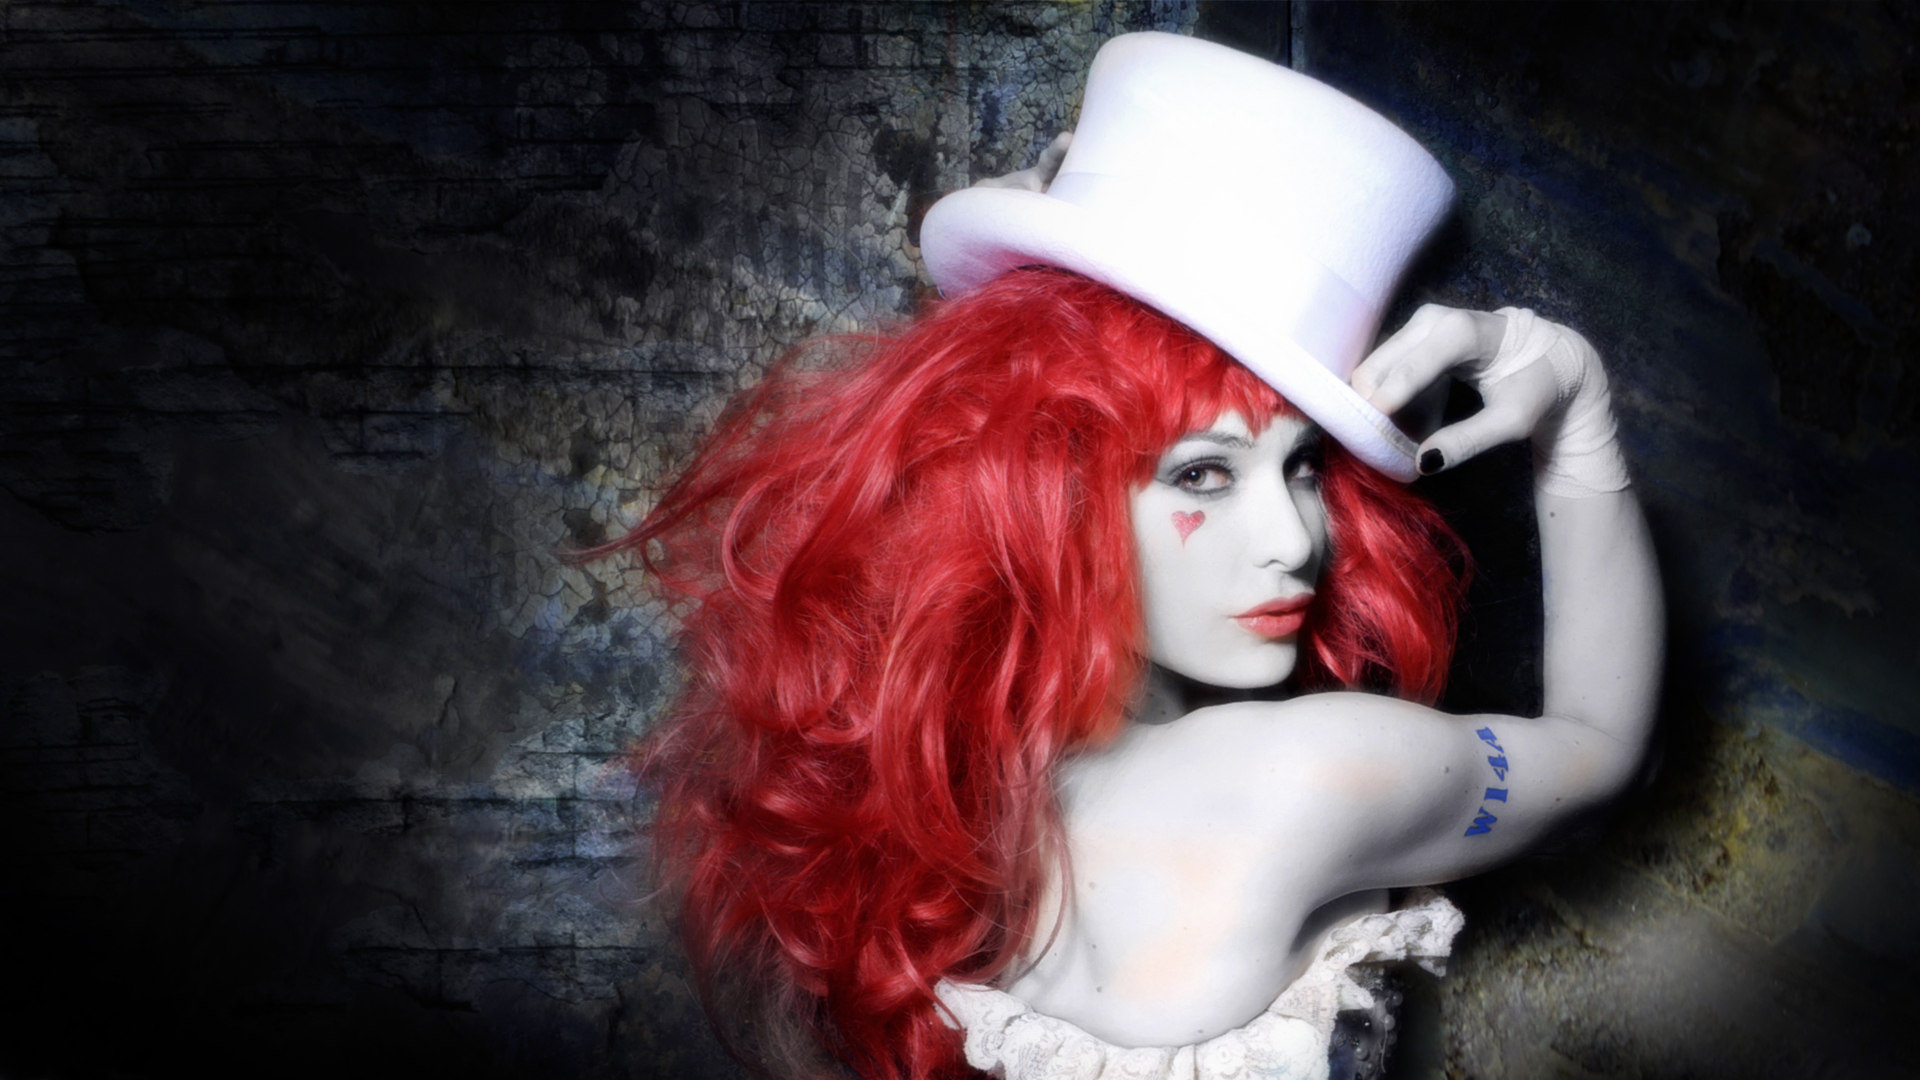 Music - Emilie Autumn  - Gorgeous - Babes - Pretty - Actress - Musician - Woman - Lady - Hot - Emilie - Red - Violin - Heart - Model - Women  - Entropy - Wallpapers Wallpaper